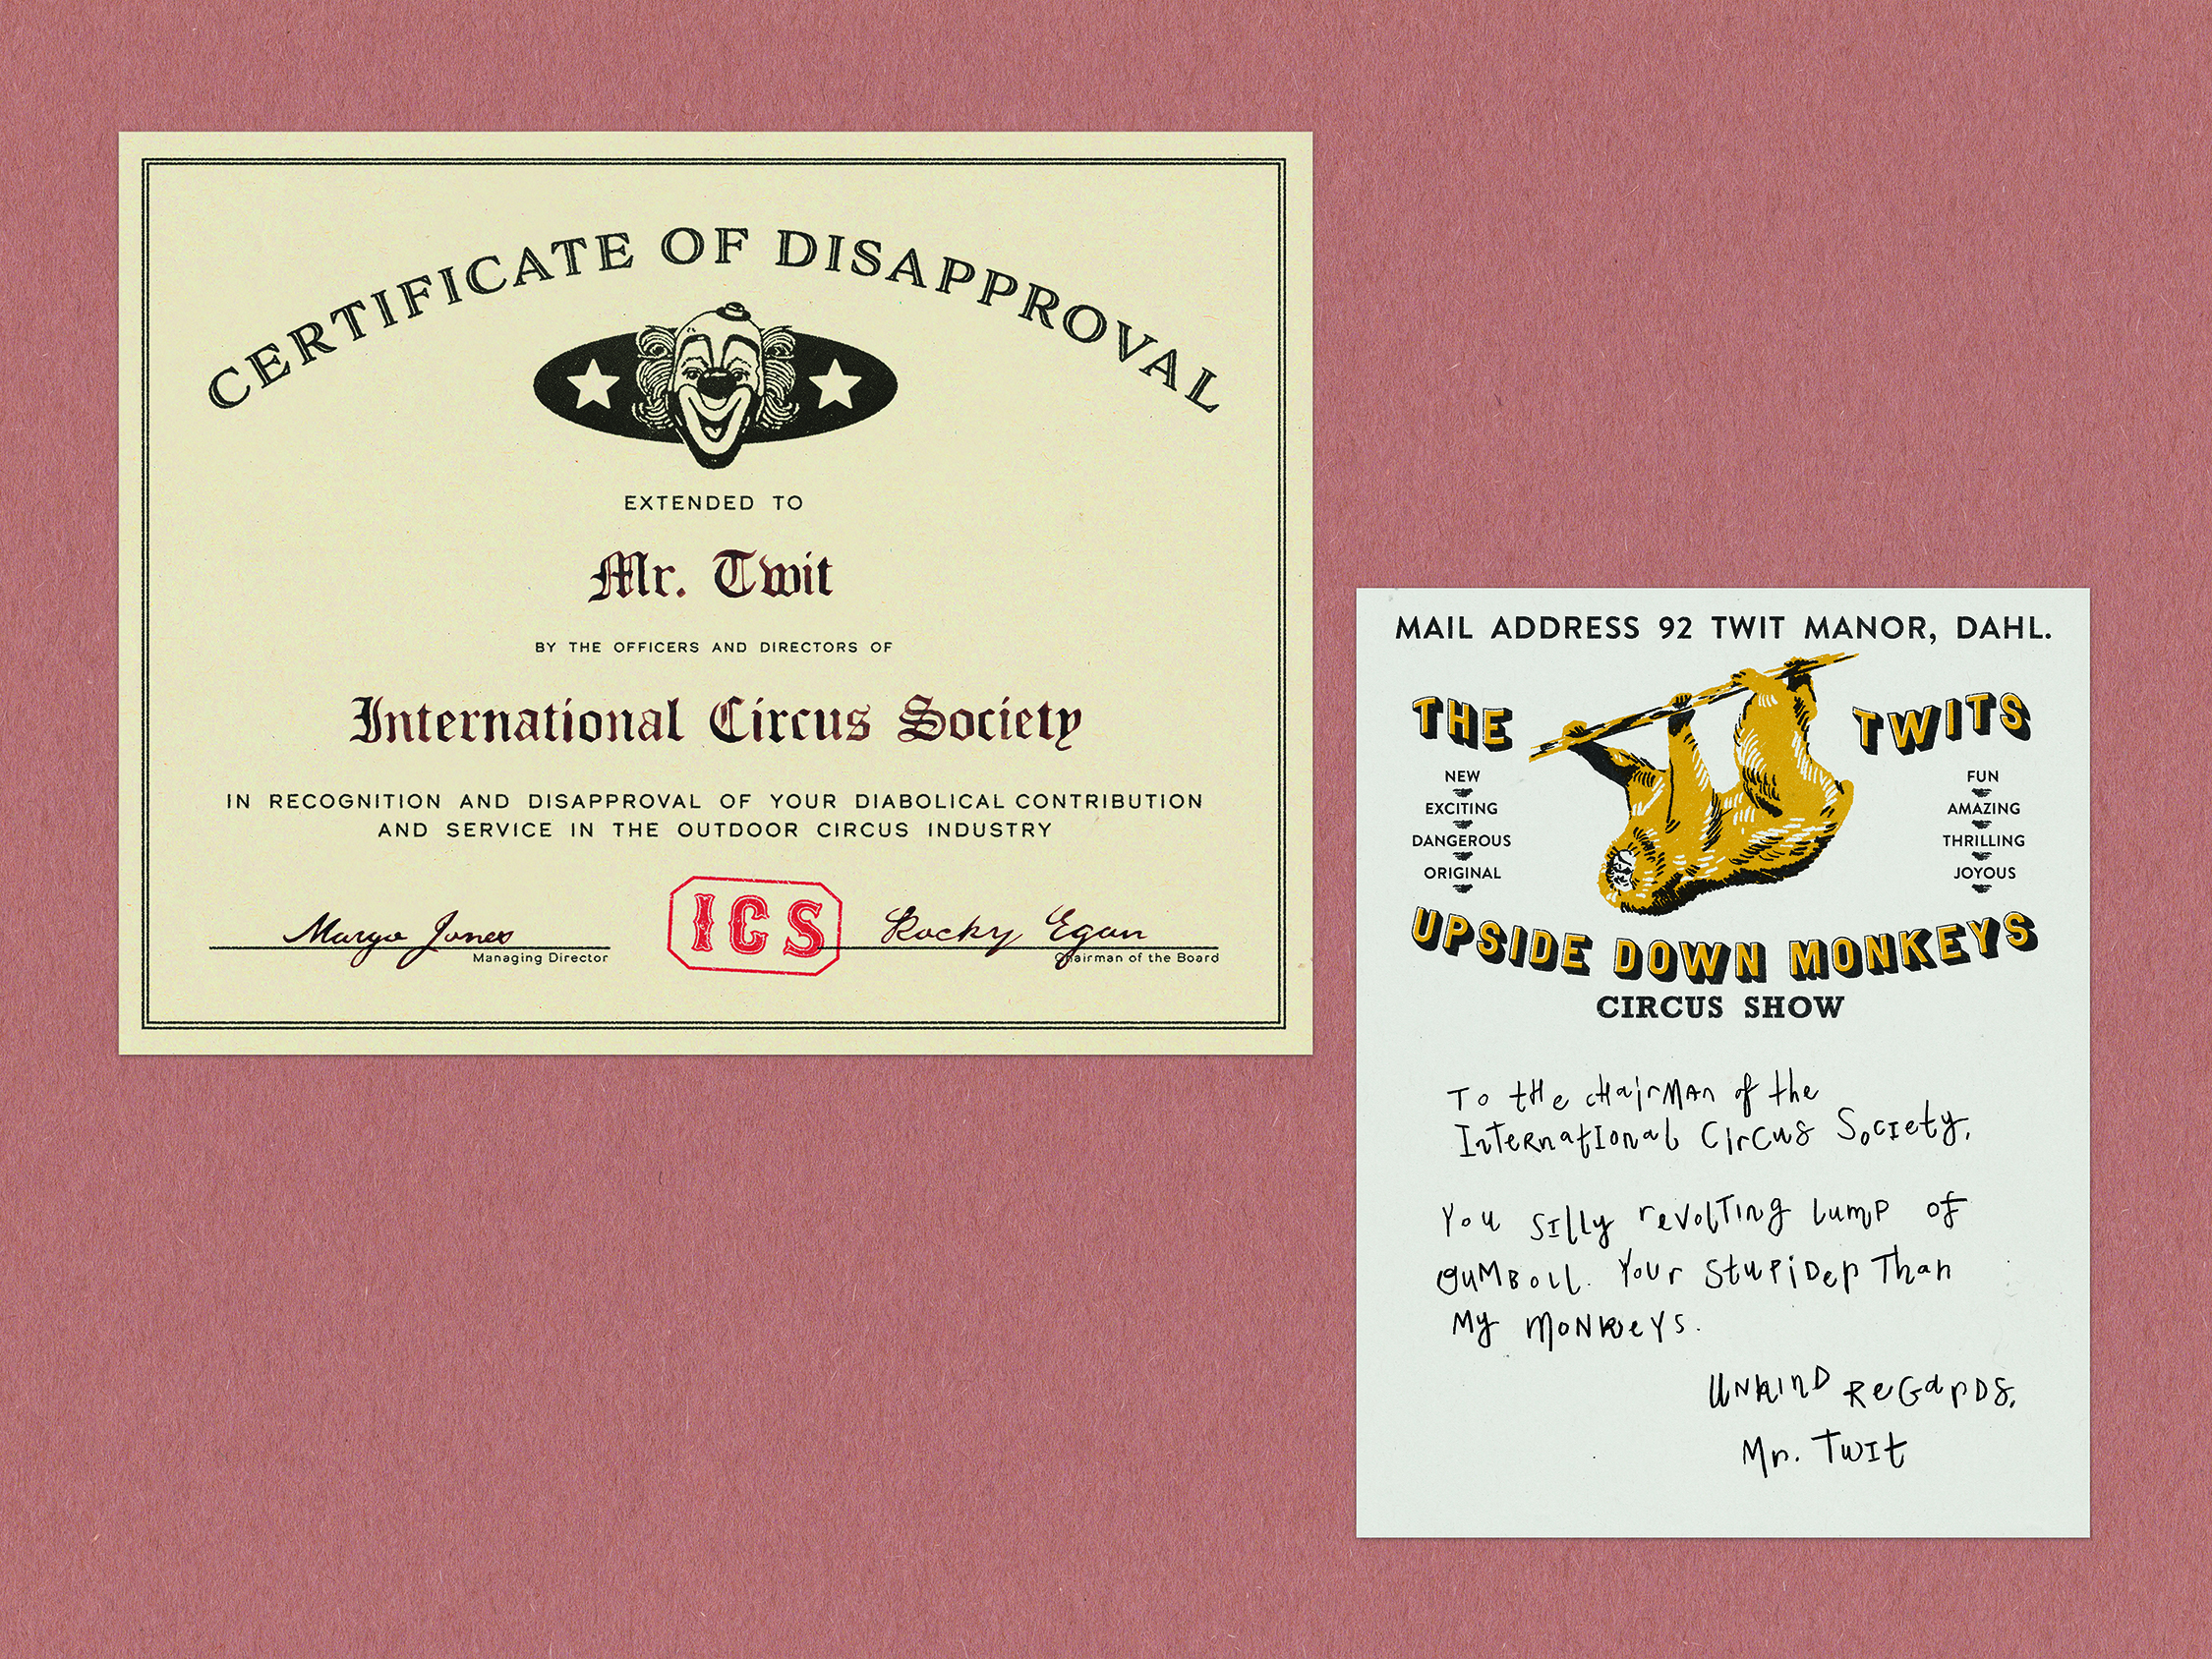 Certificate of Disapproval, Letter from Mr. Twit